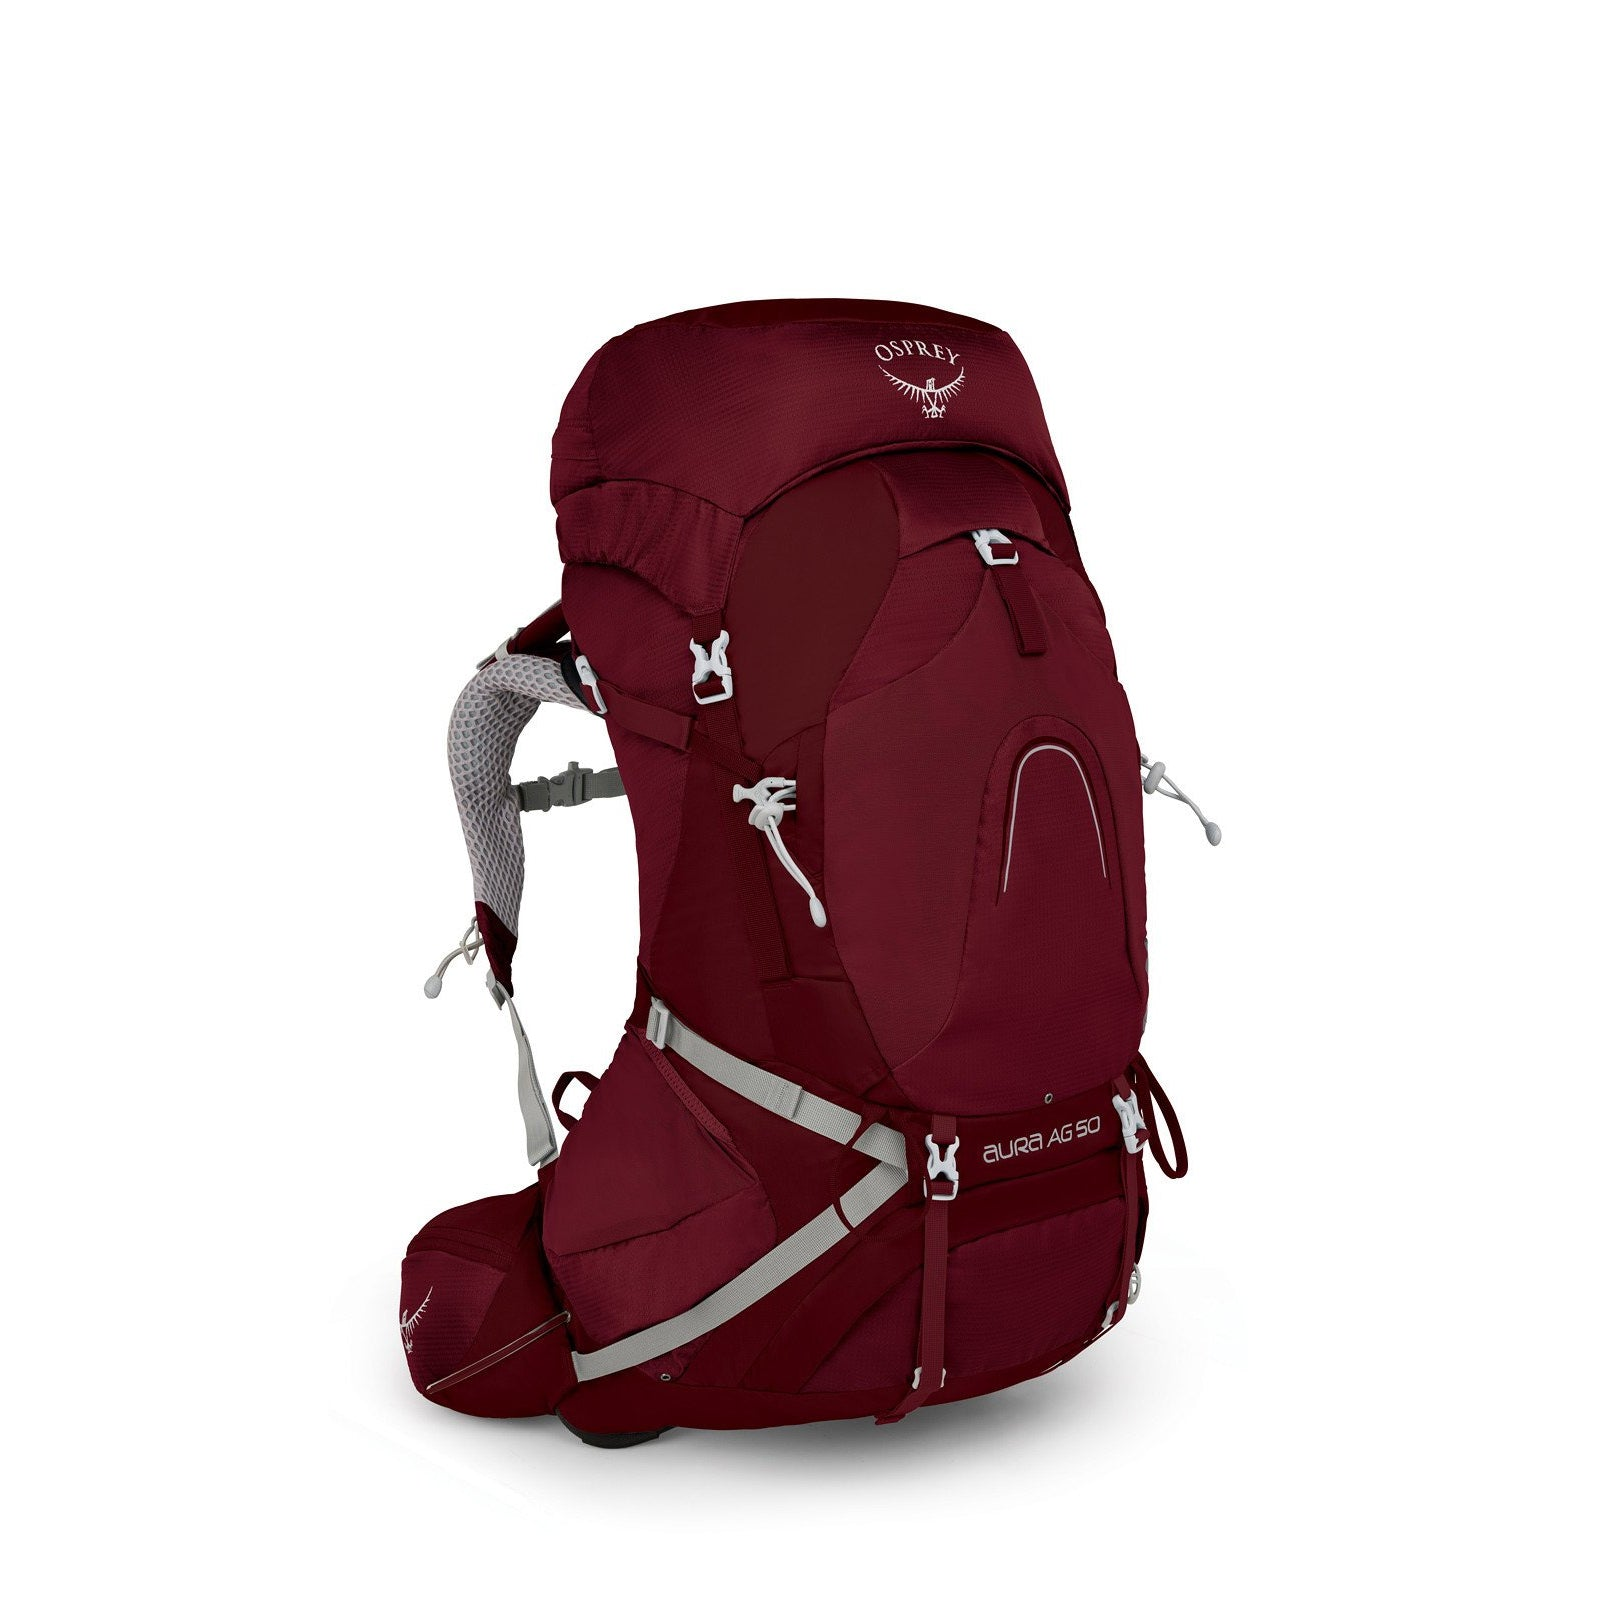 Osprey Aura 50 Anti-Gravity Women's Backpack